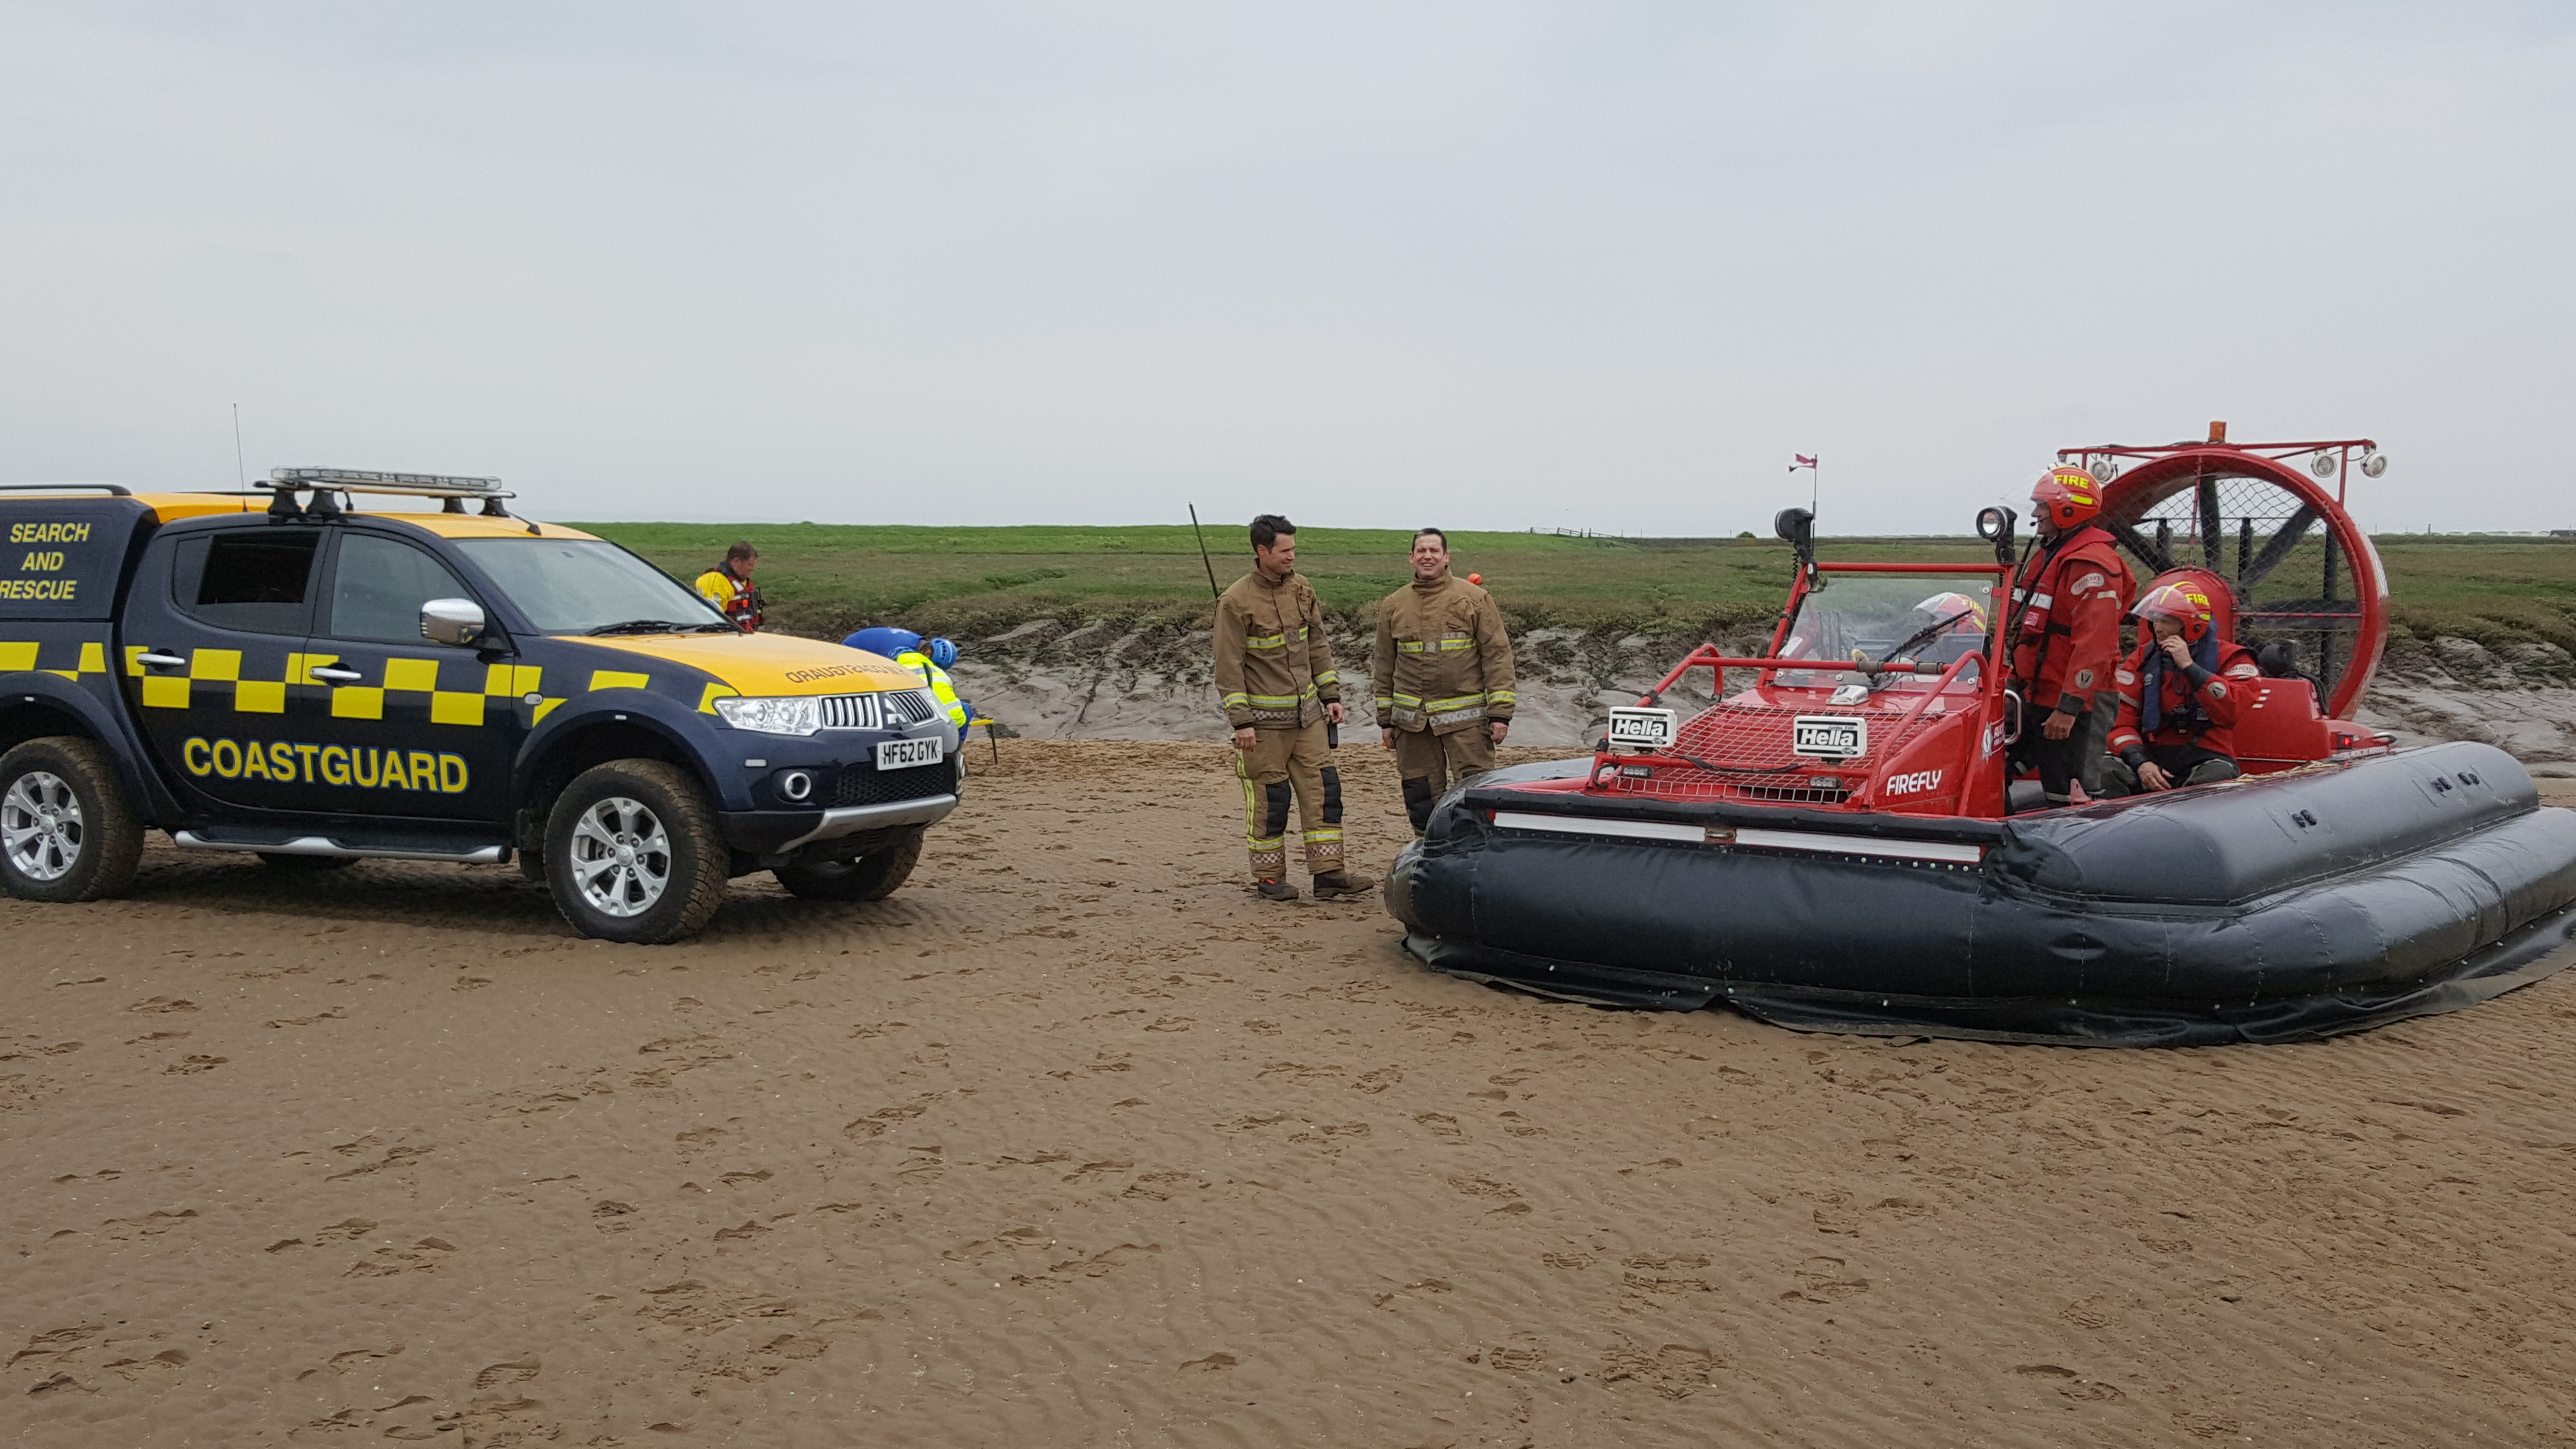 Avon Fire & Rescue team up with HM Coastguard for mud rescue training